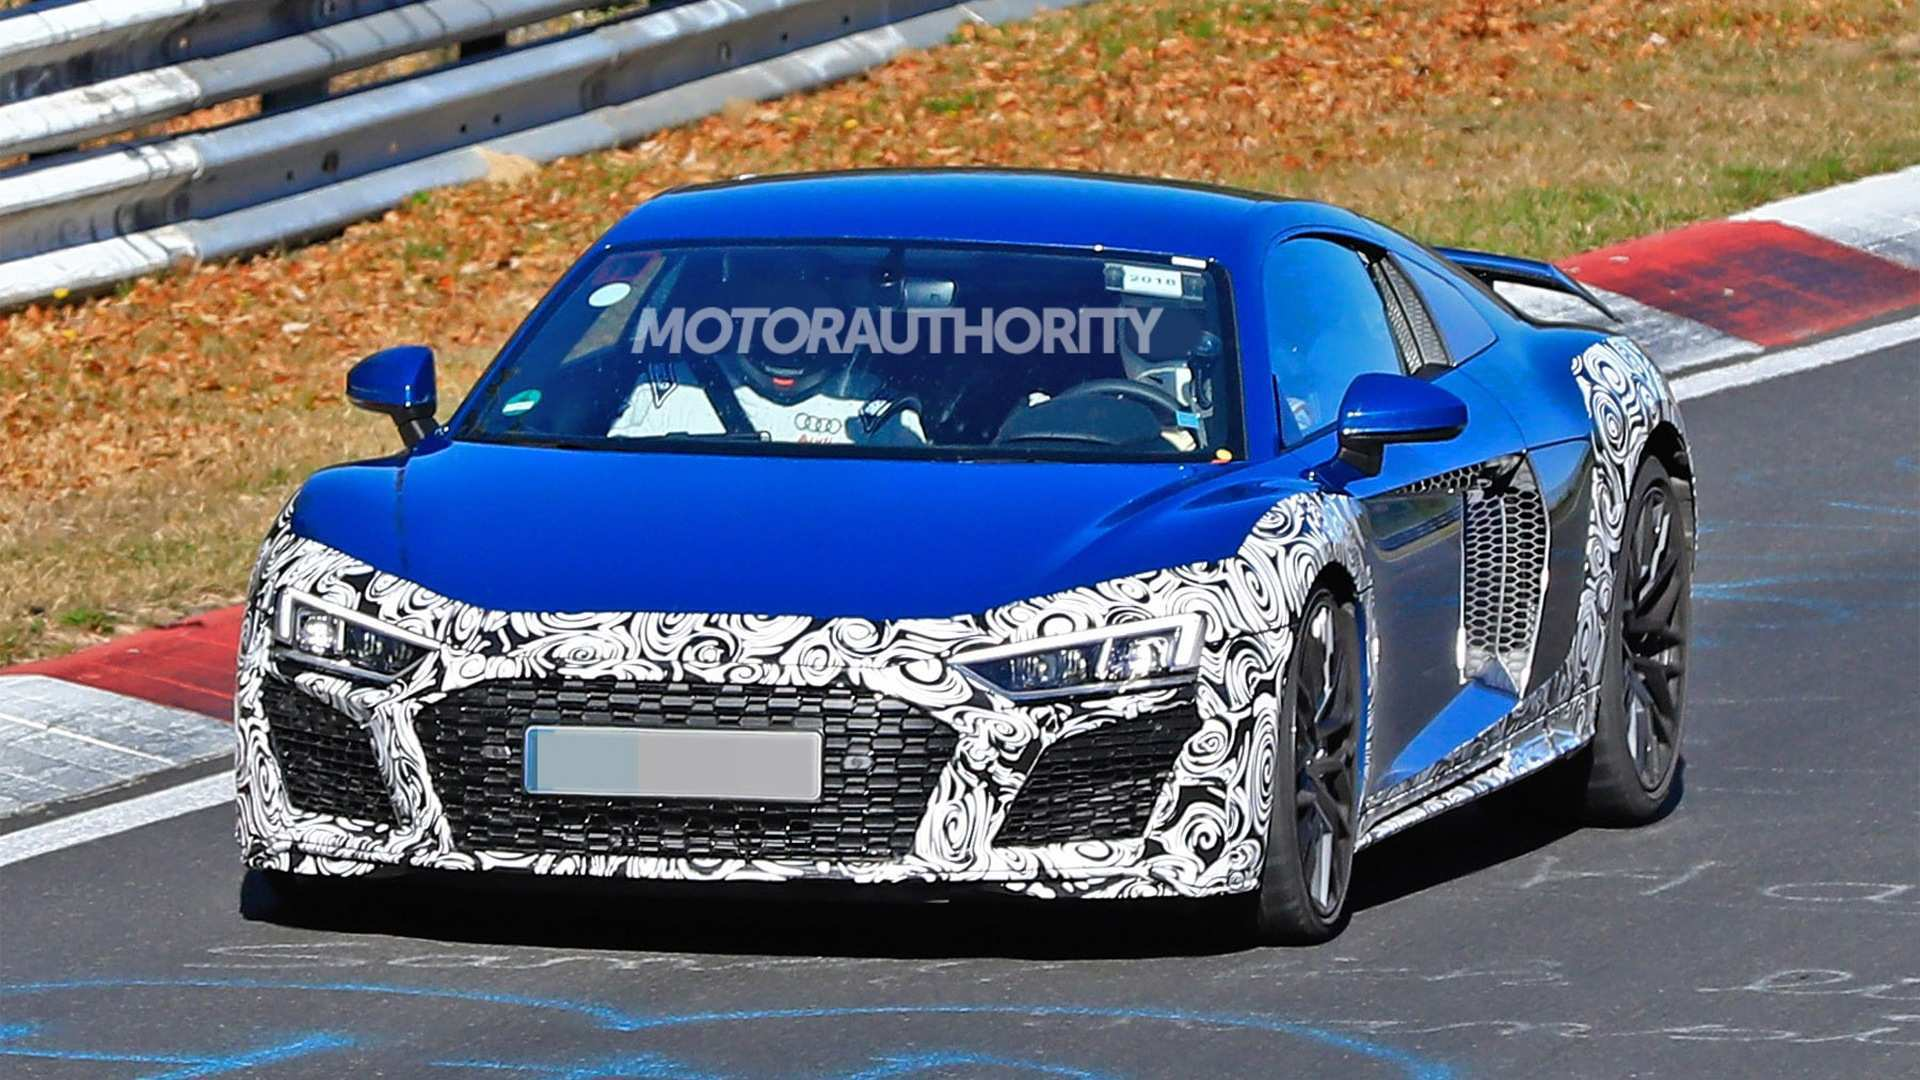 59 Concept of 2020 Audi R8 New Concept by 2020 Audi R8